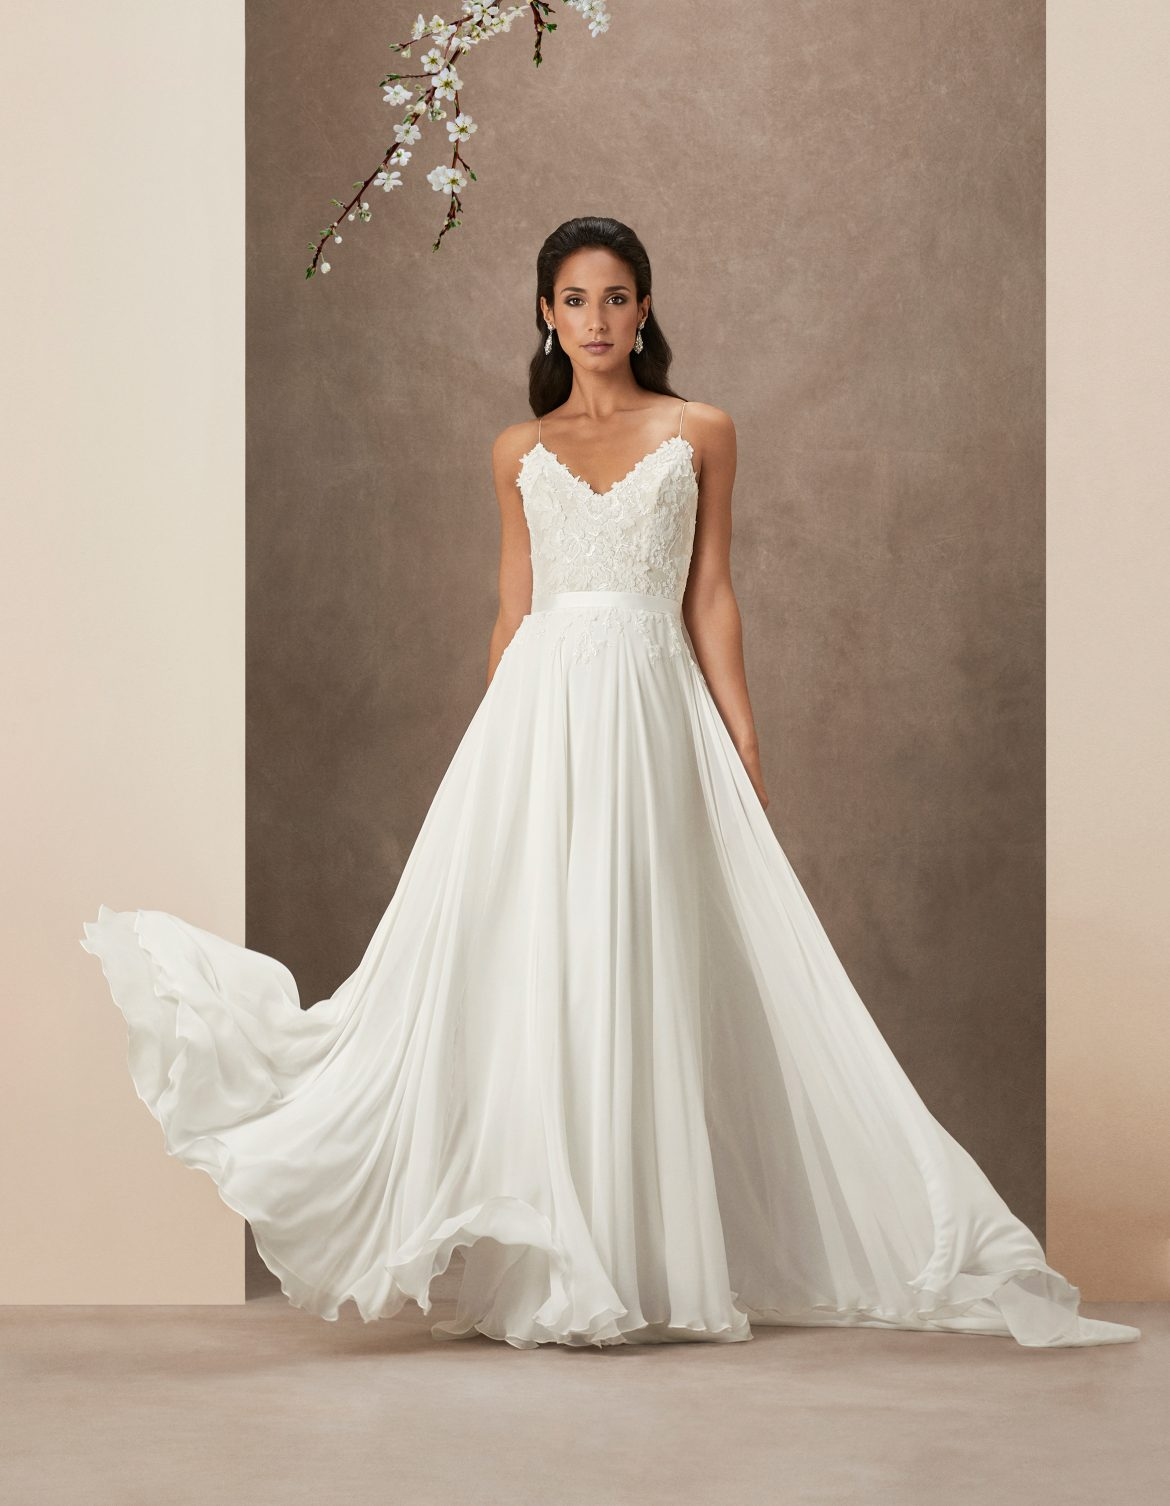 Sakura designer wedding dress by Caroline Castigliano